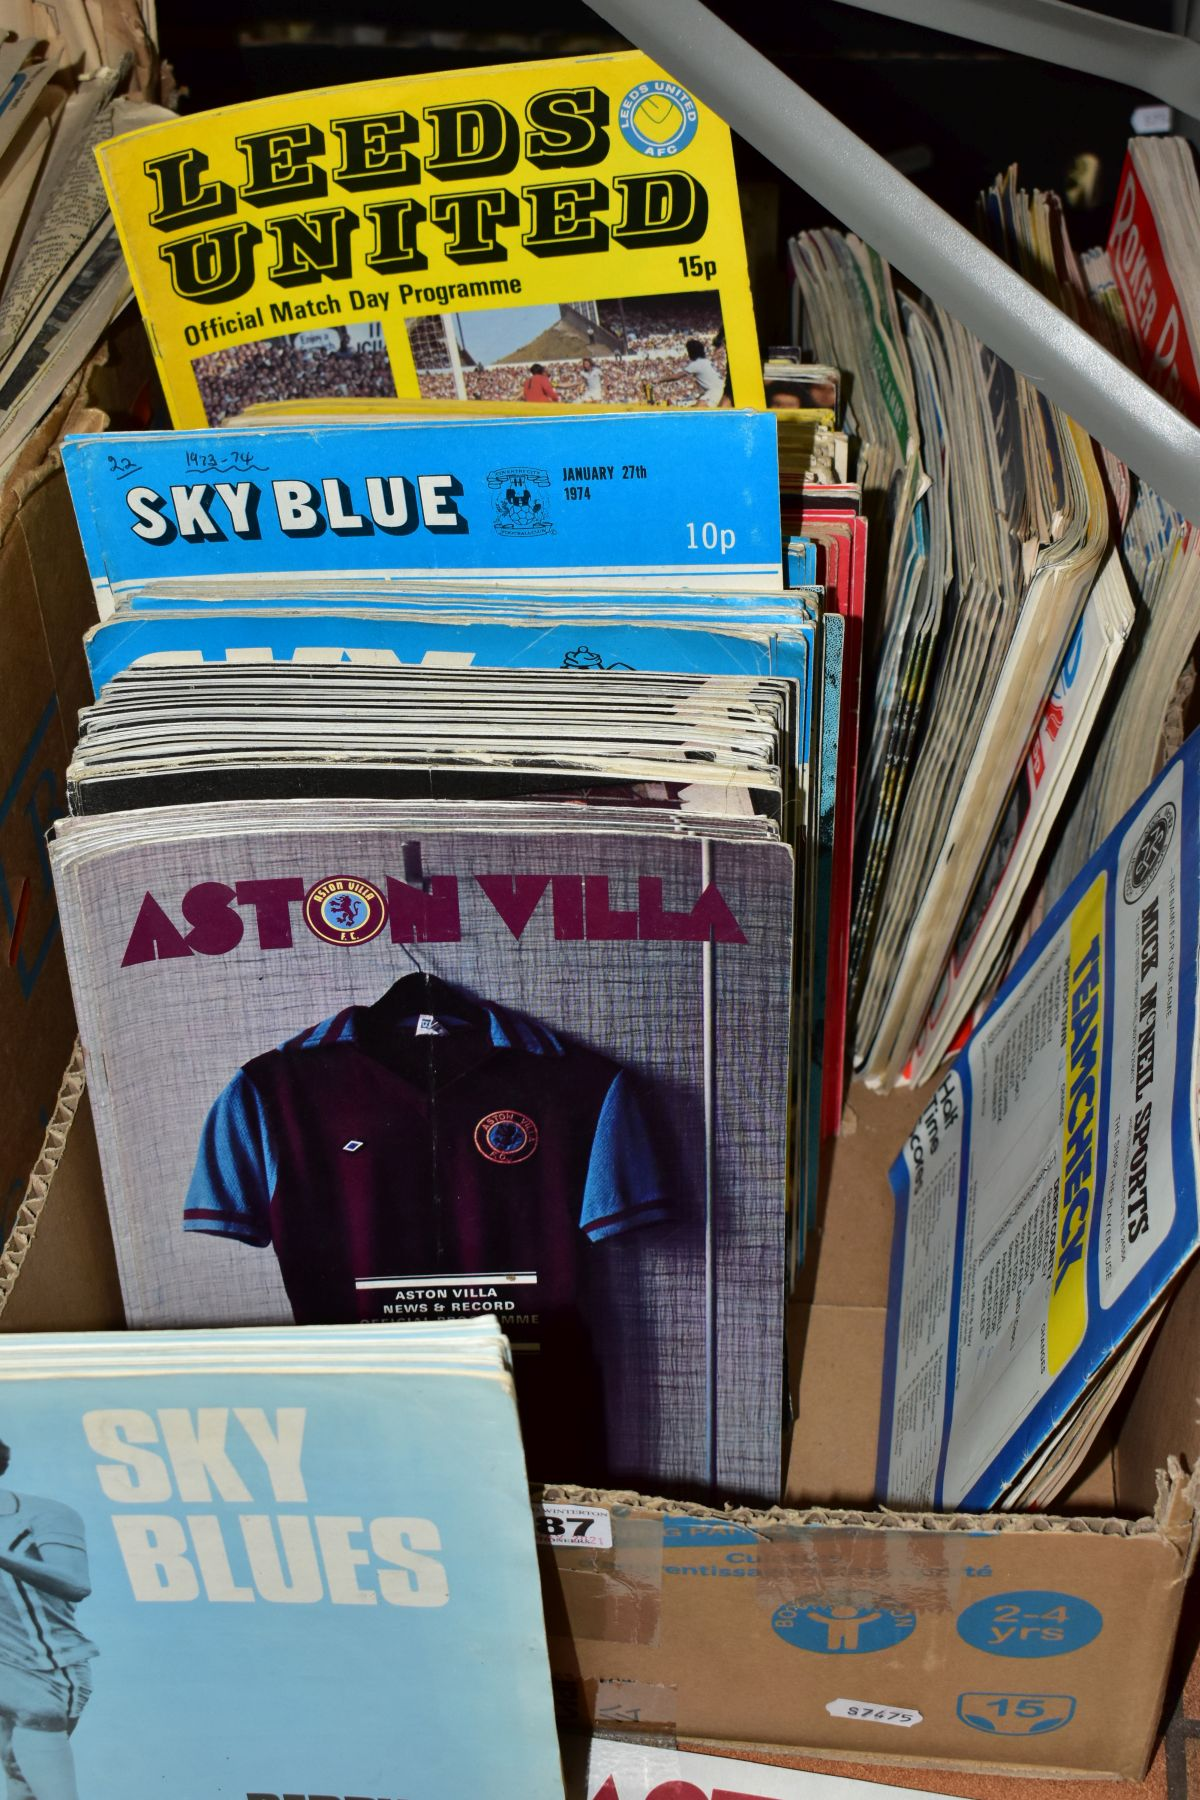 FOOTBALL PROGRAMMES, a large quantity of approximately three hundred to three hundred and fifty